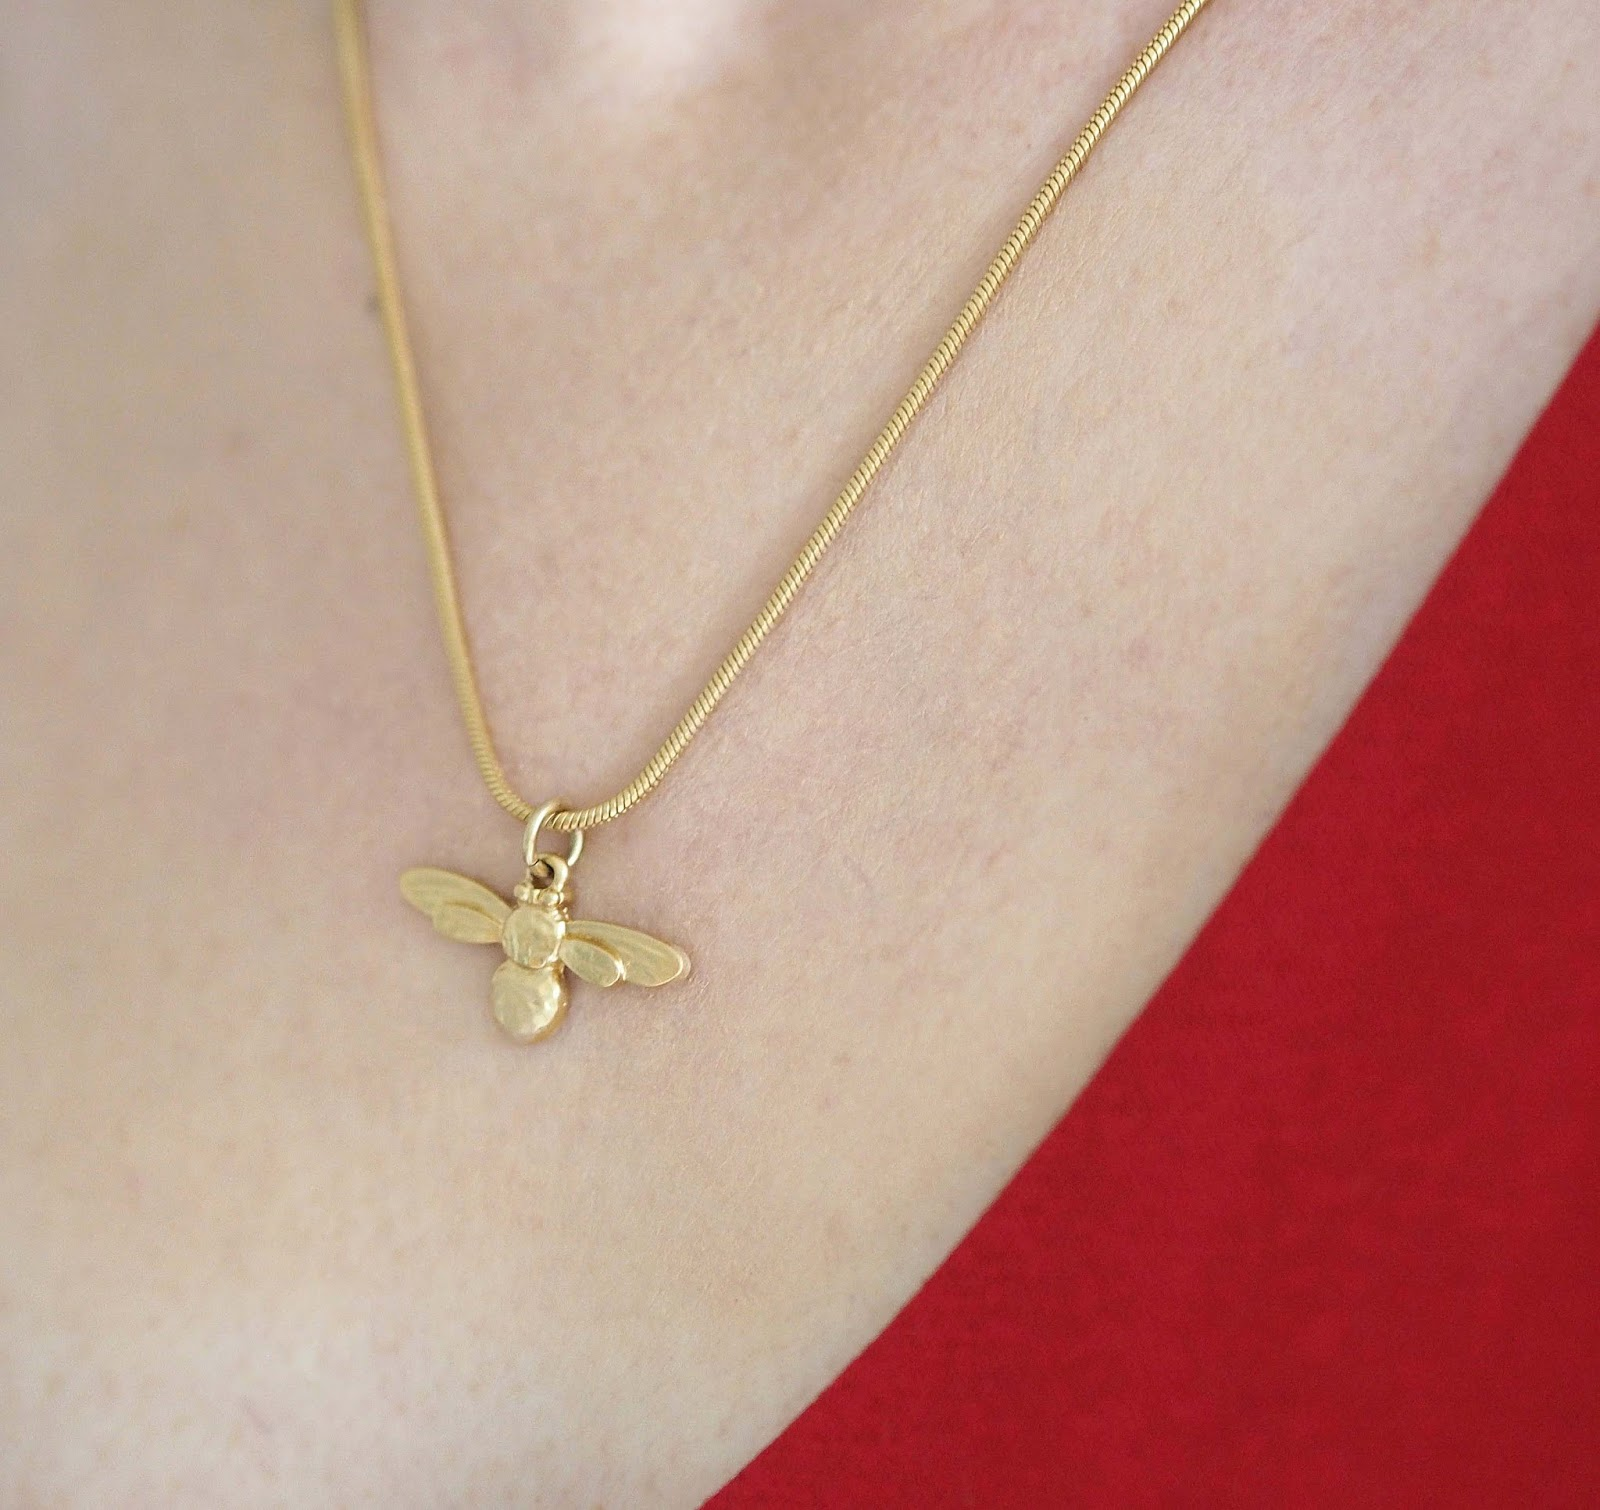 Danon gold honey bee necklace